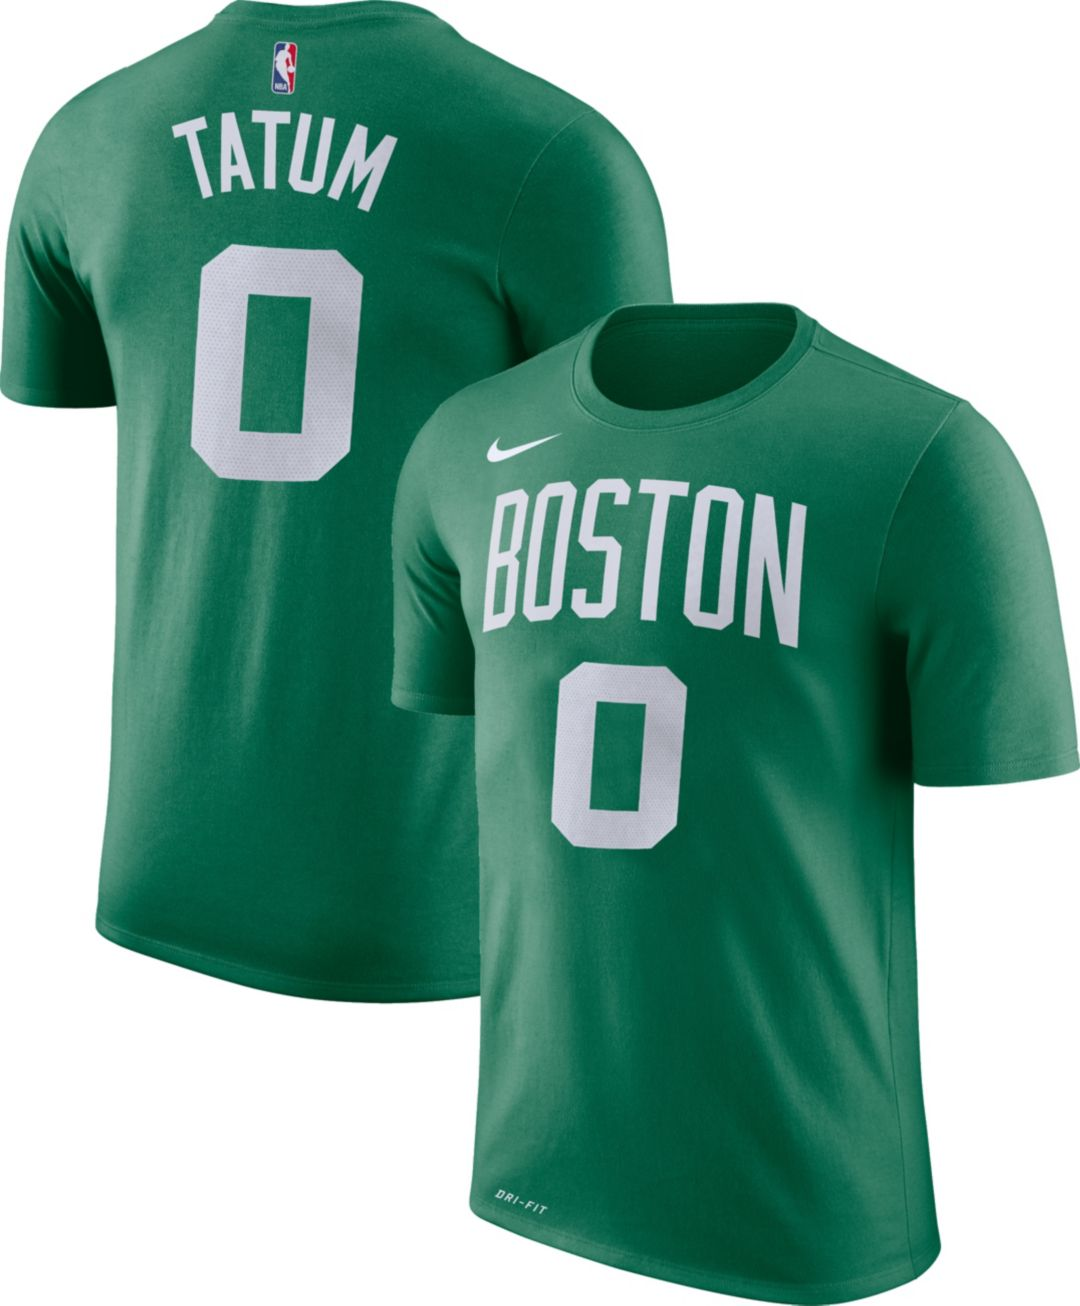 outlet store c8aa9 caa26 Nike Youth Boston Celtics Jayson Tatum #0 Dri-FIT Kelly Green T-Shirt